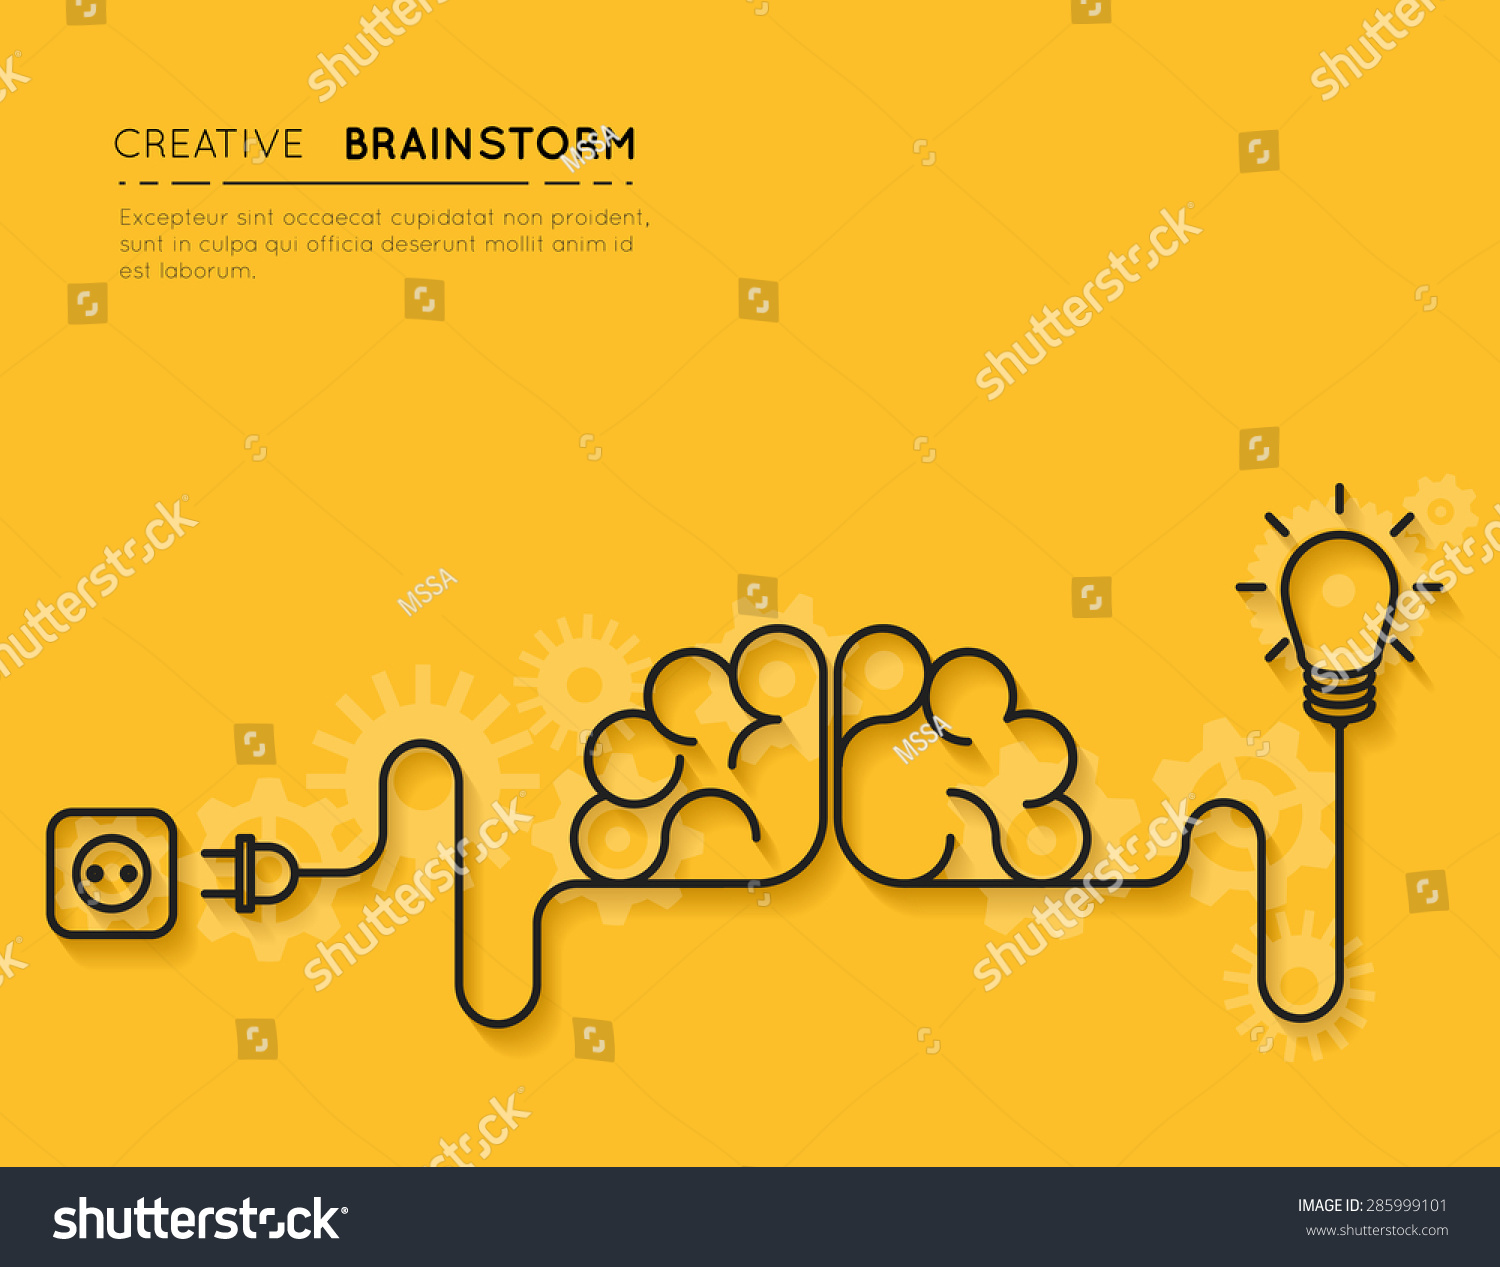 Creative Brainstorm Concept Business Idea Innovation Stock